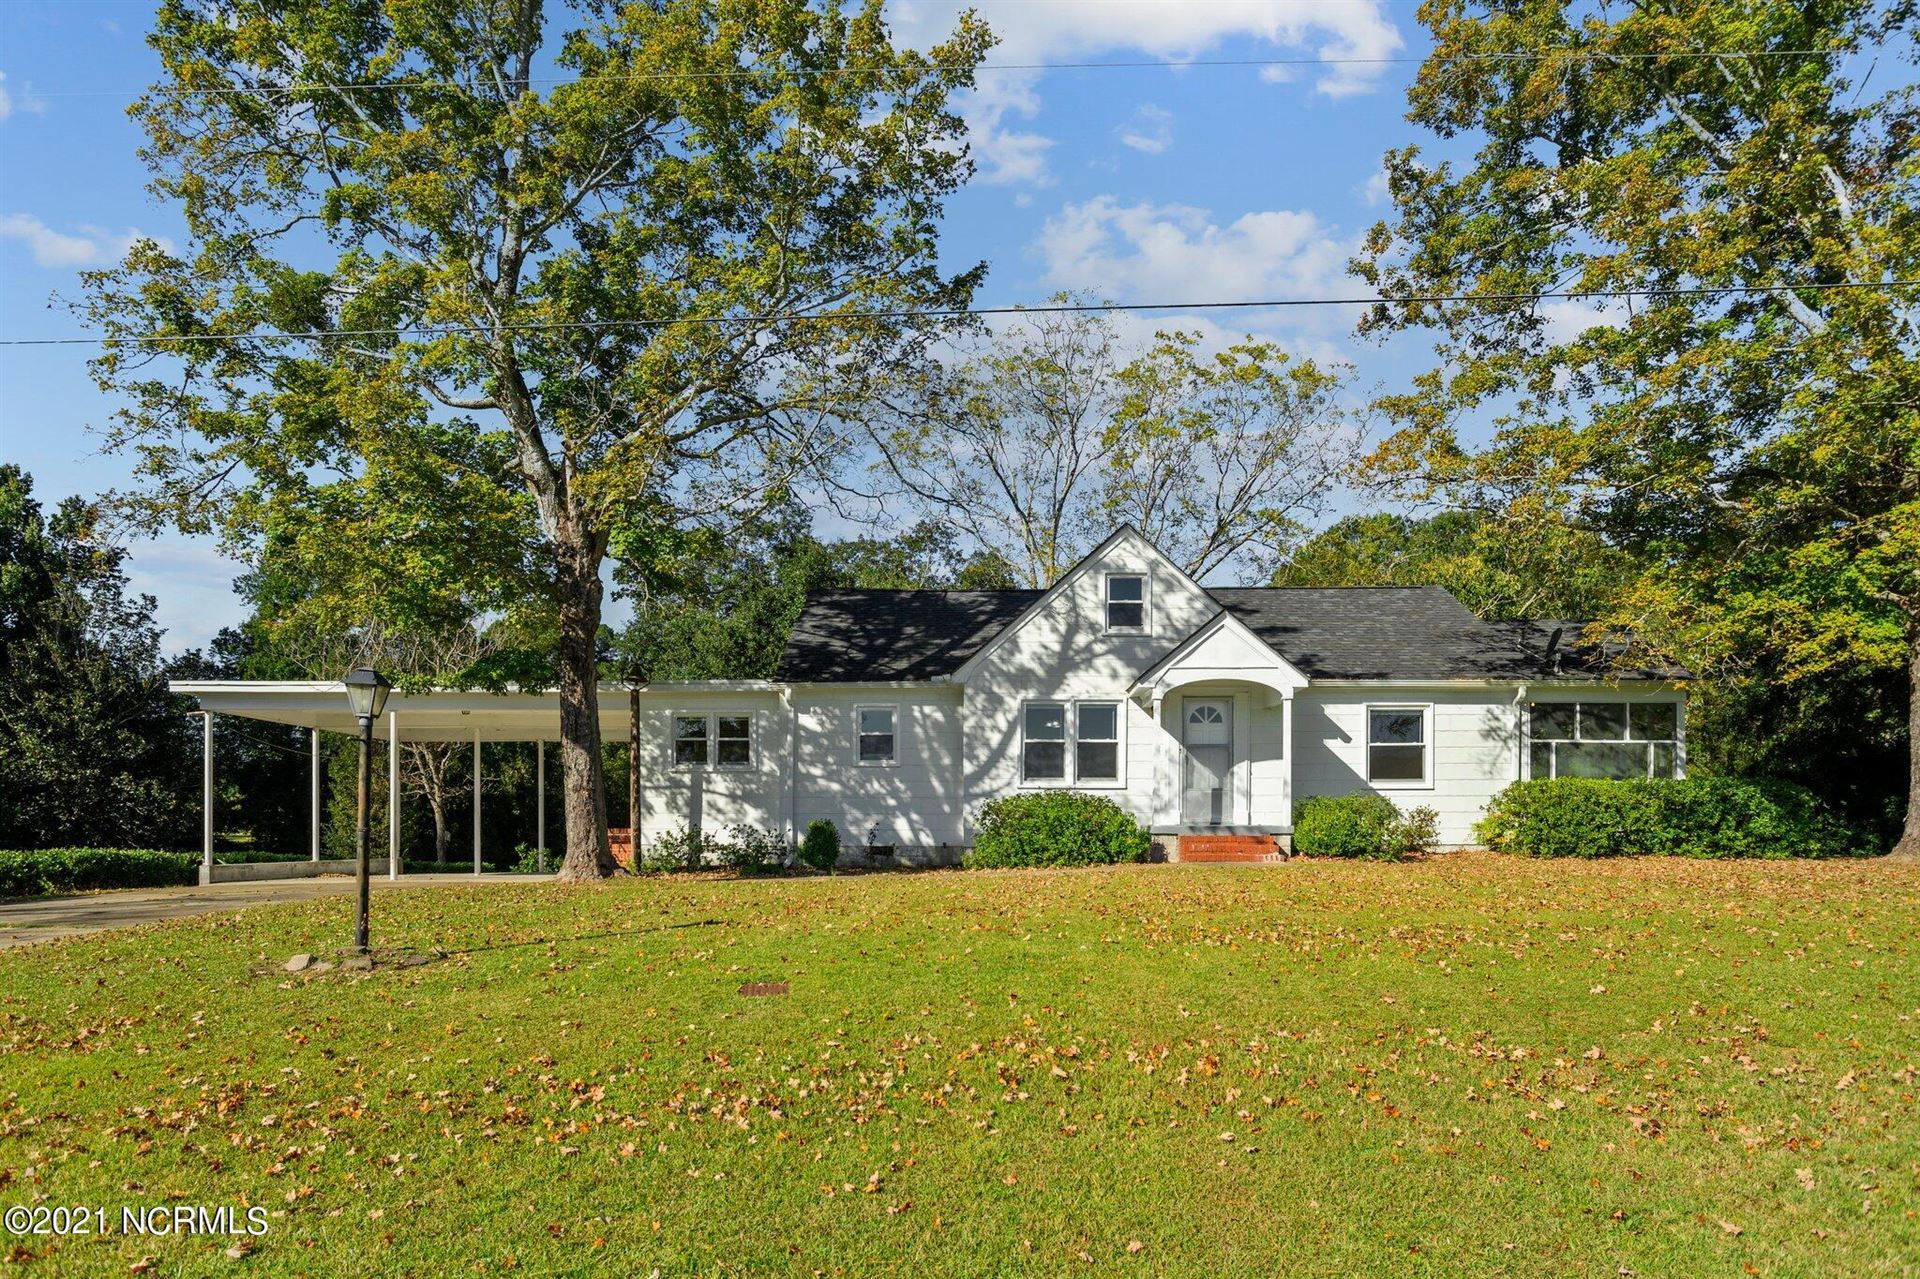 Photo of 241 Justice Road, Jacksonville, NC 28540 (MLS # 100295679)